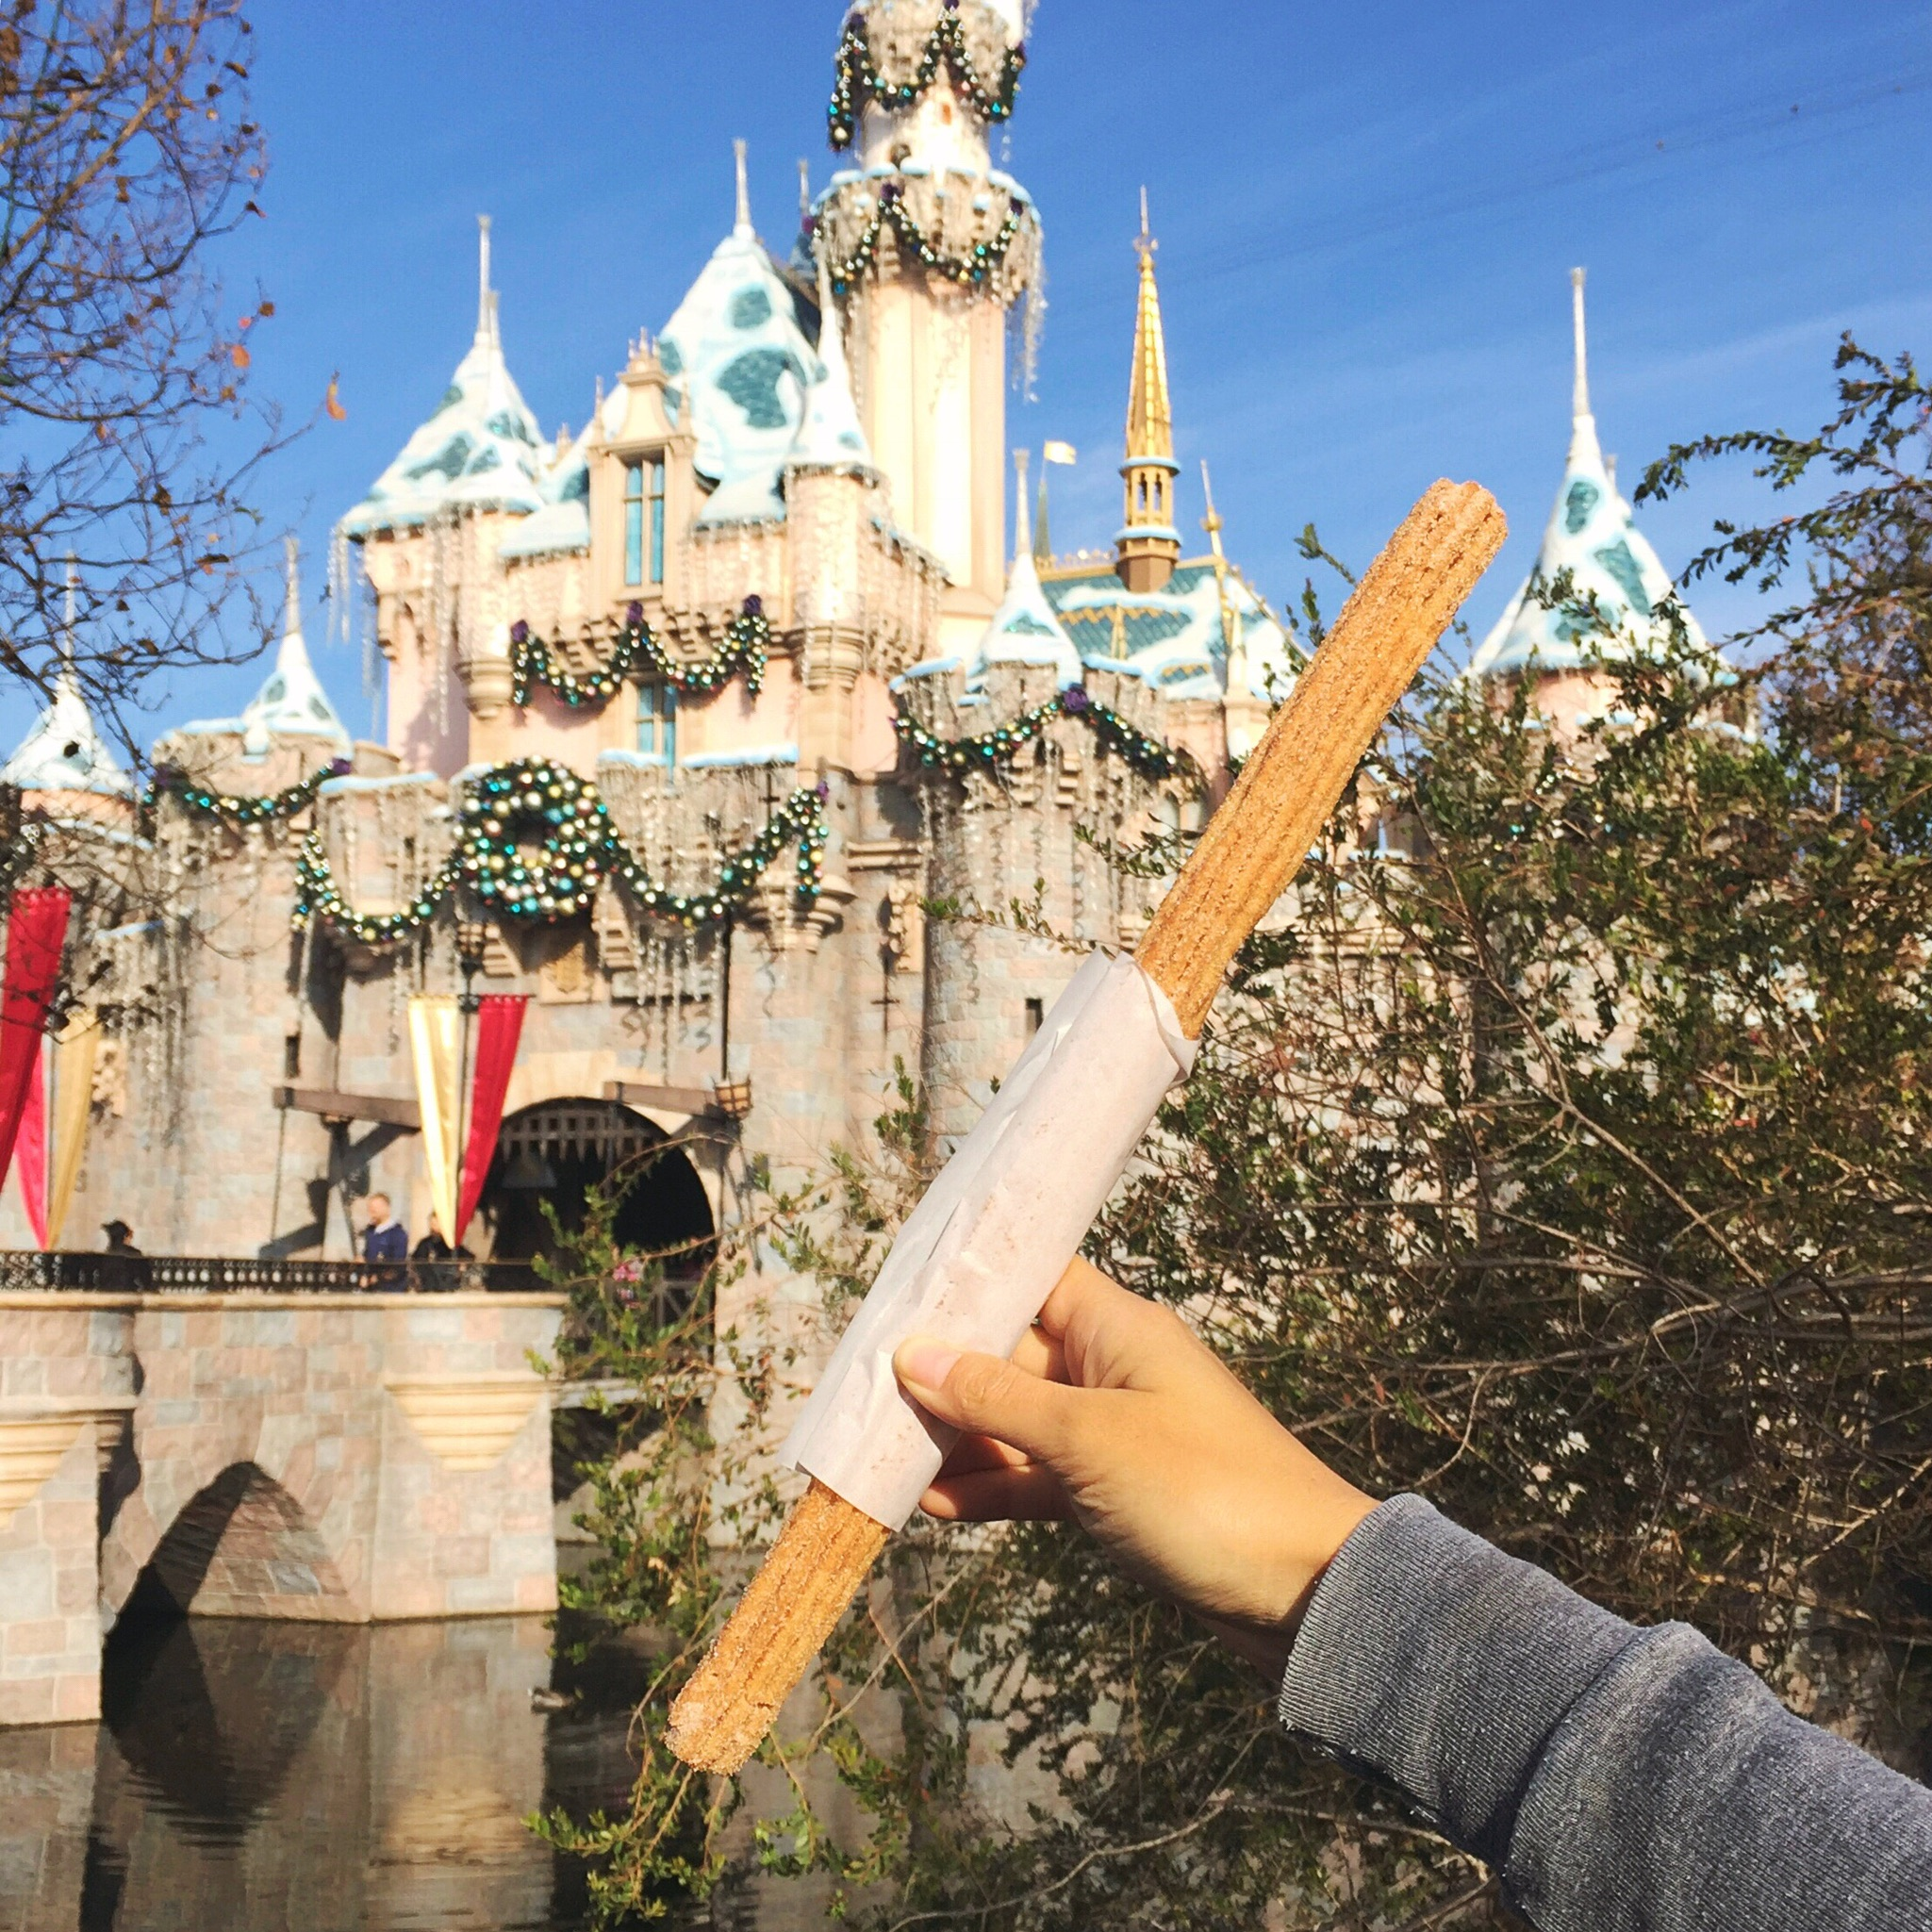 Disneyland churro with its only packaging, a square of parchment paper.